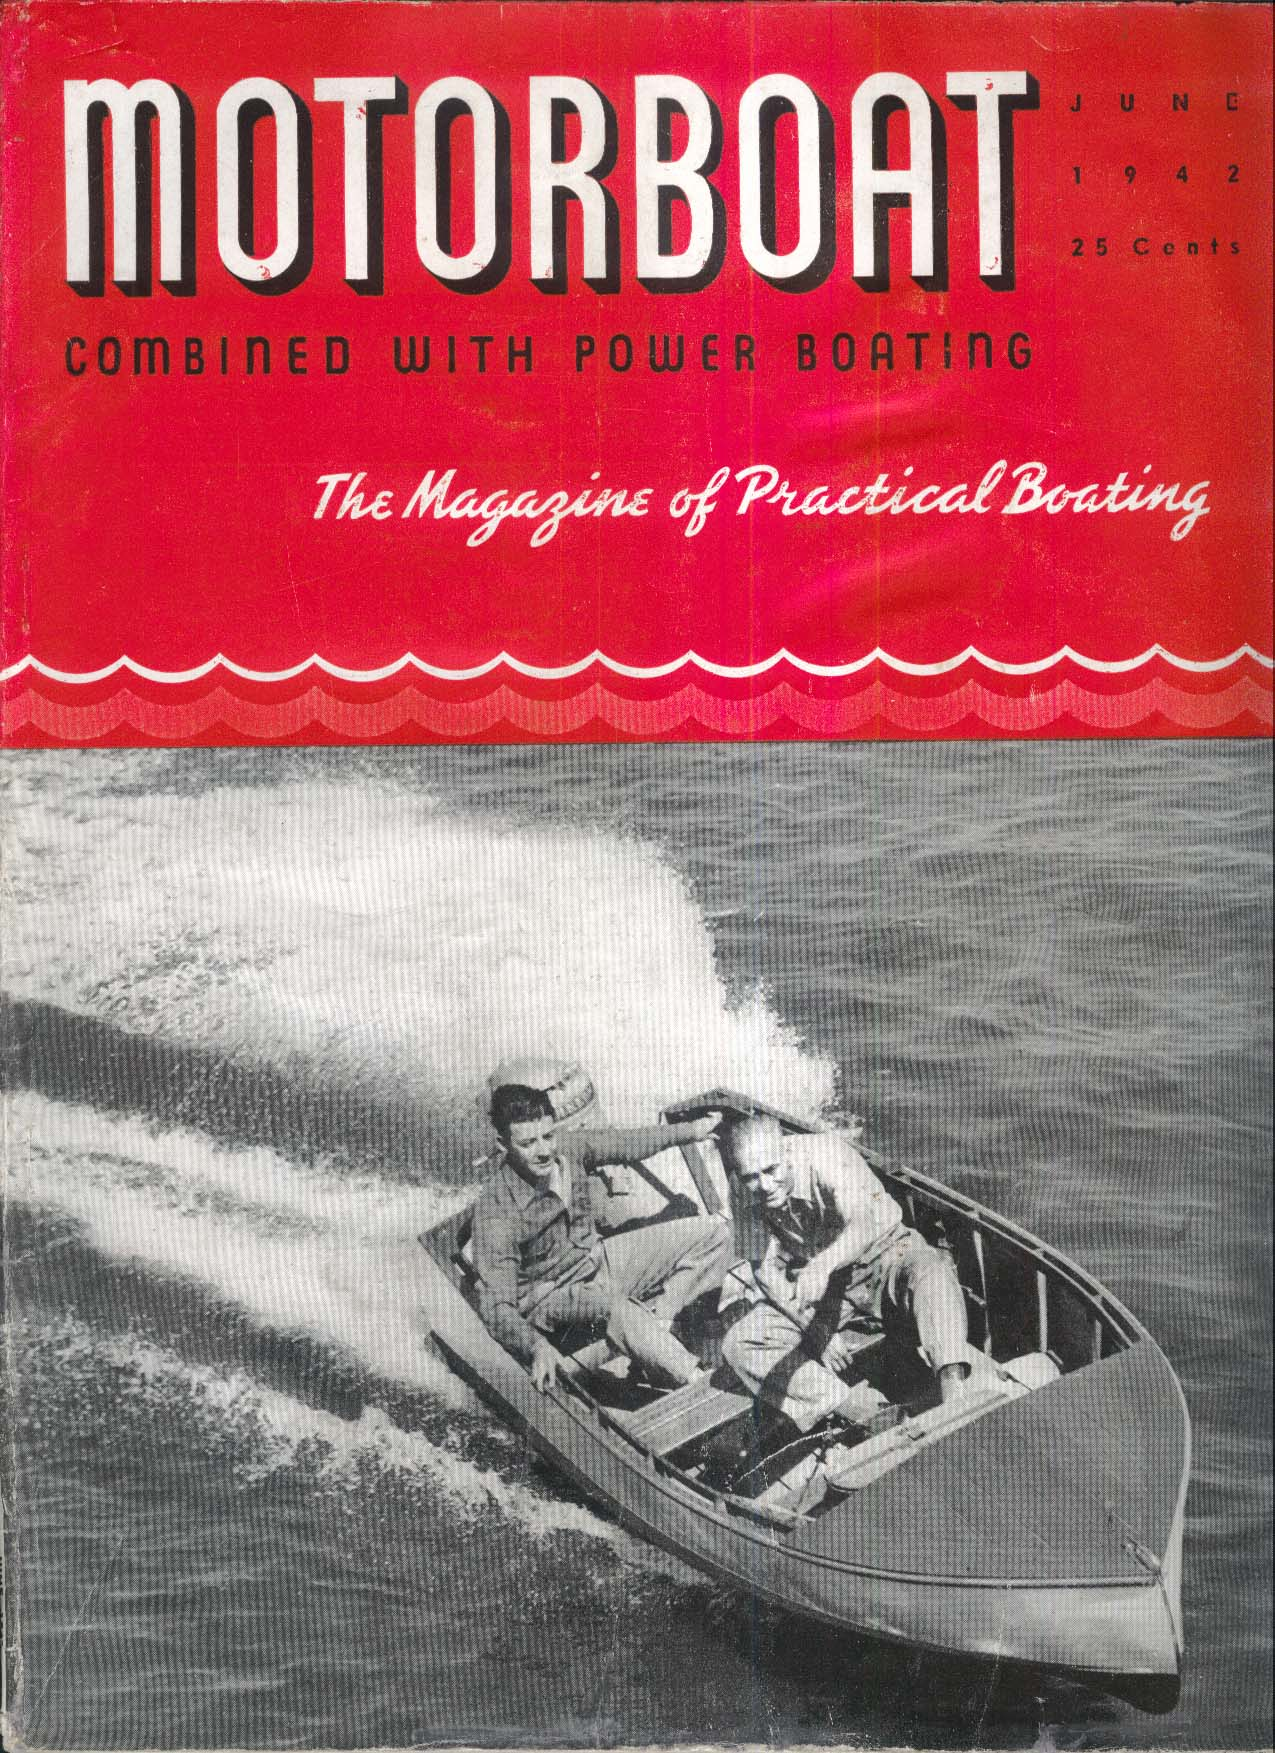 MOTORBOAT Gas Rationing CLR Engine Room Safety 6 1942